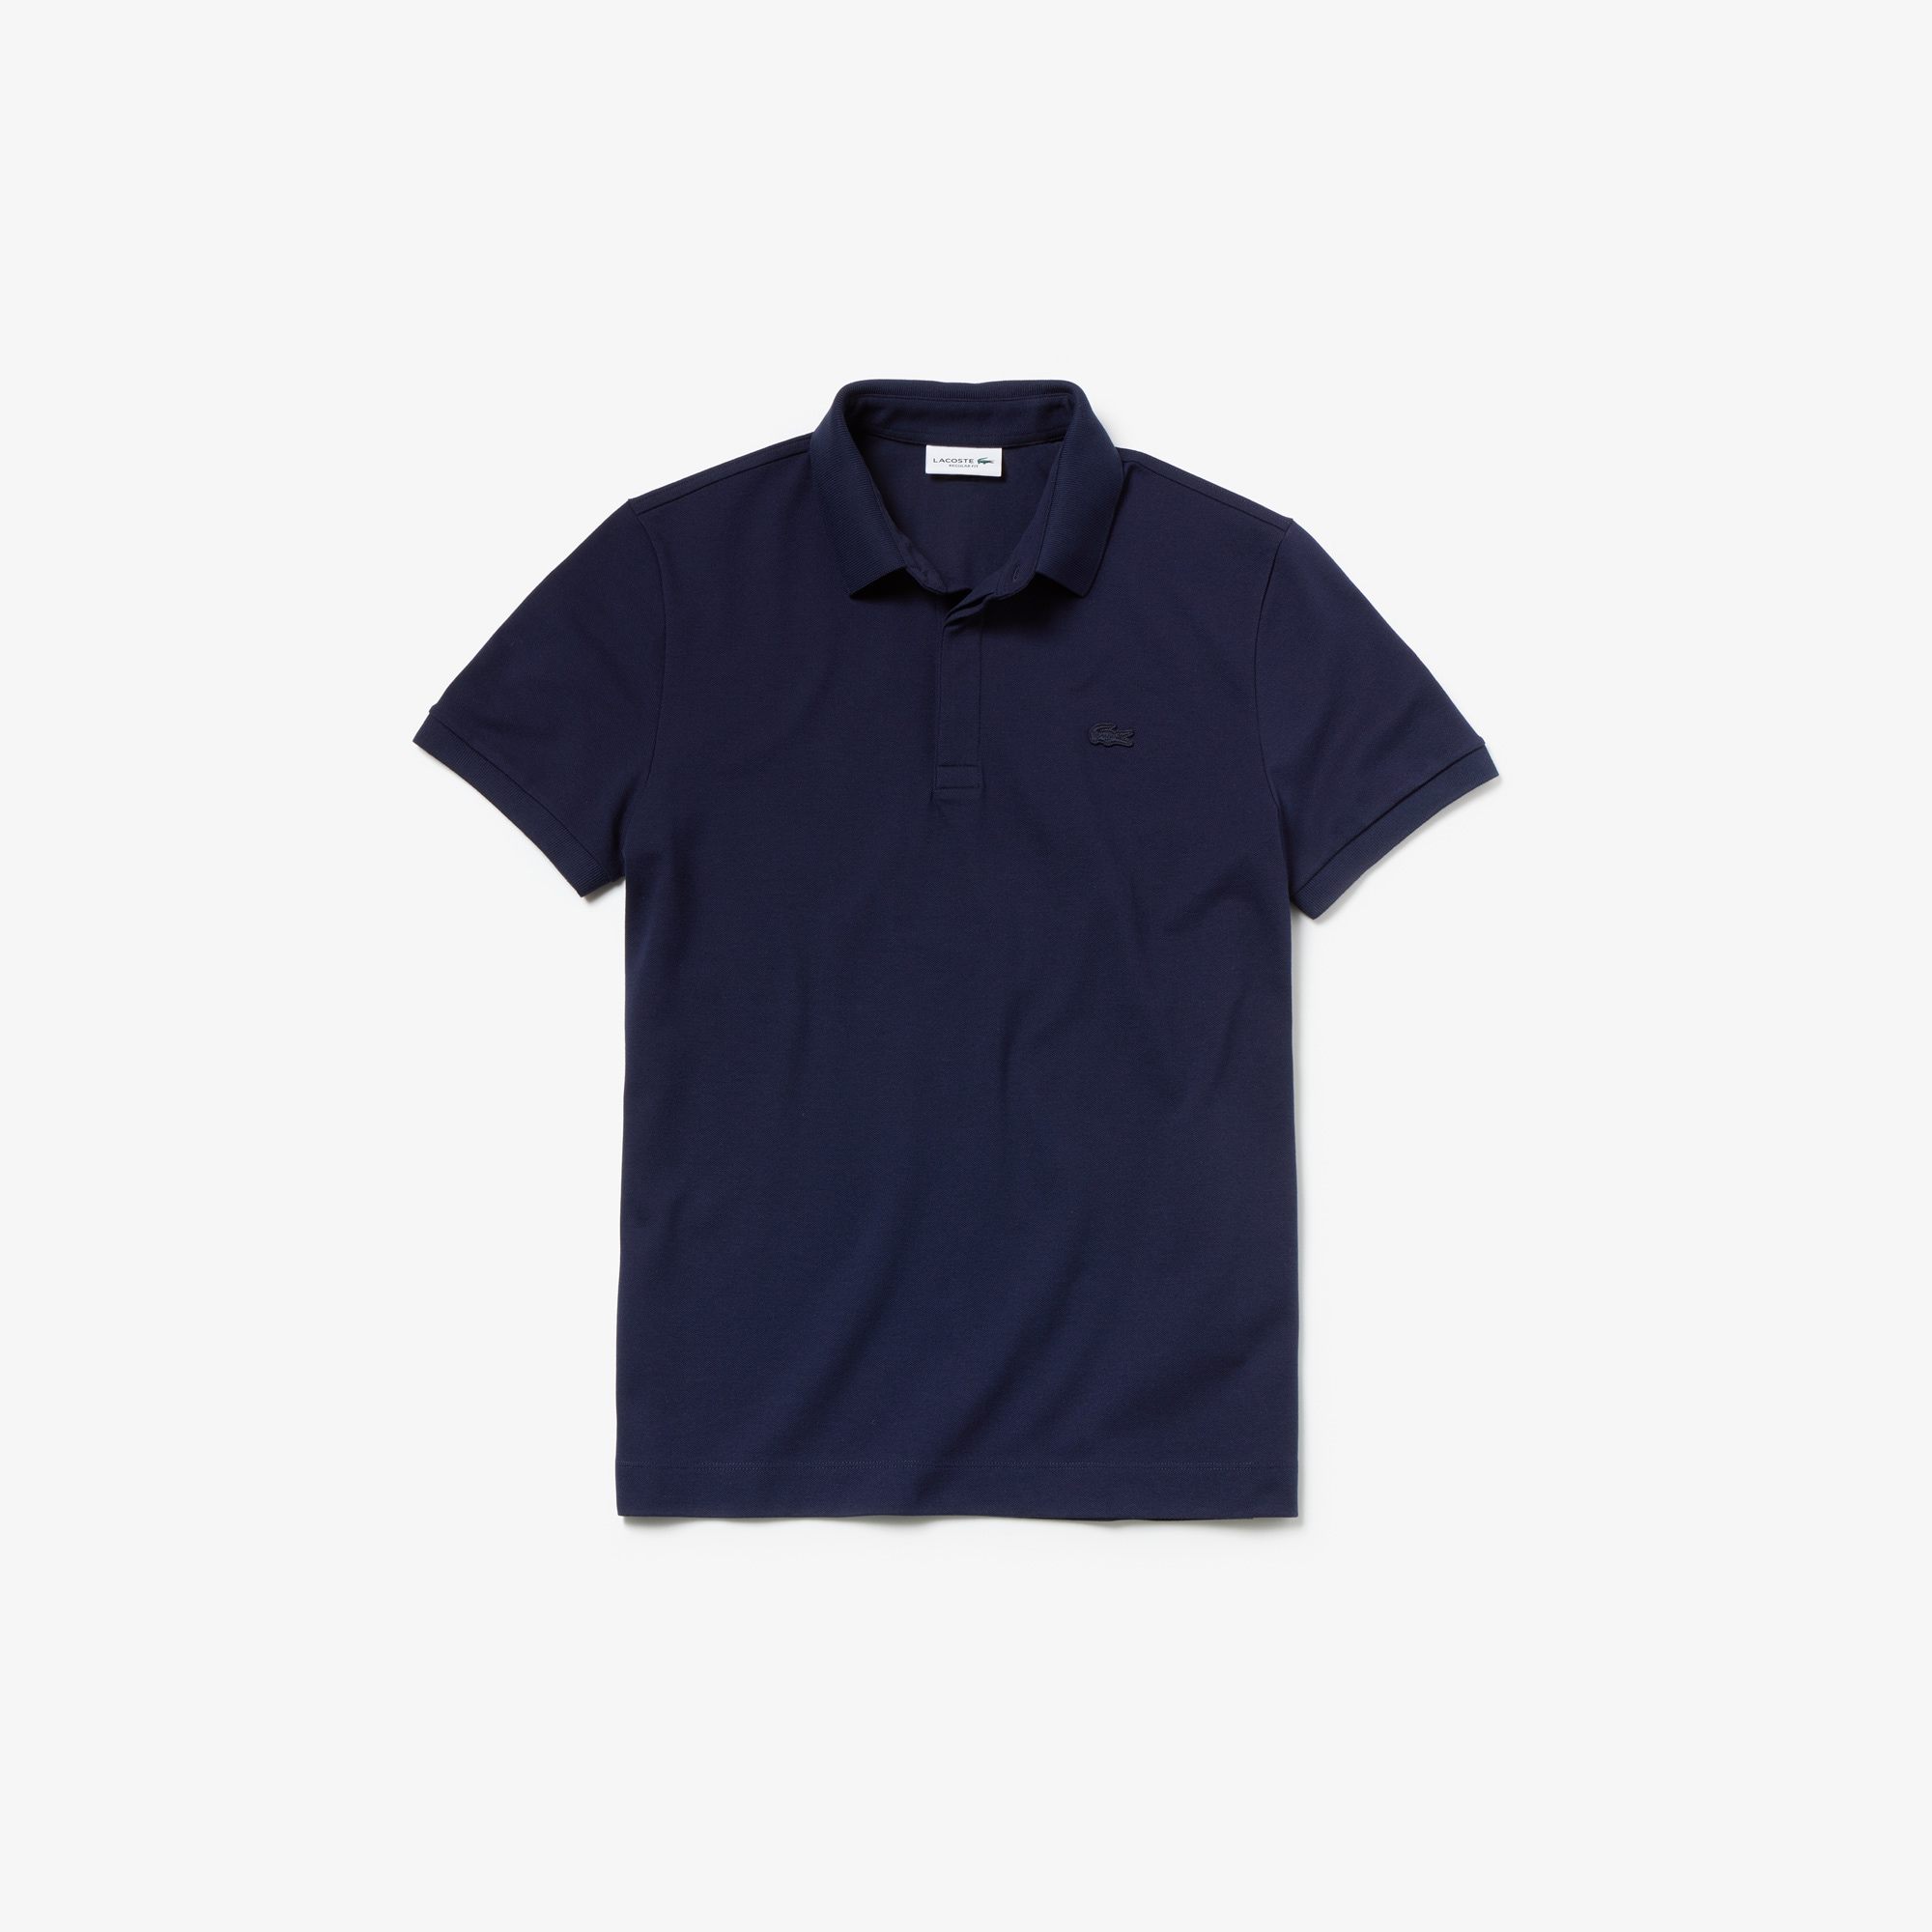 Men's Lacoste Paris Edition Regular Fit Stretch Cotton Piqué Polo